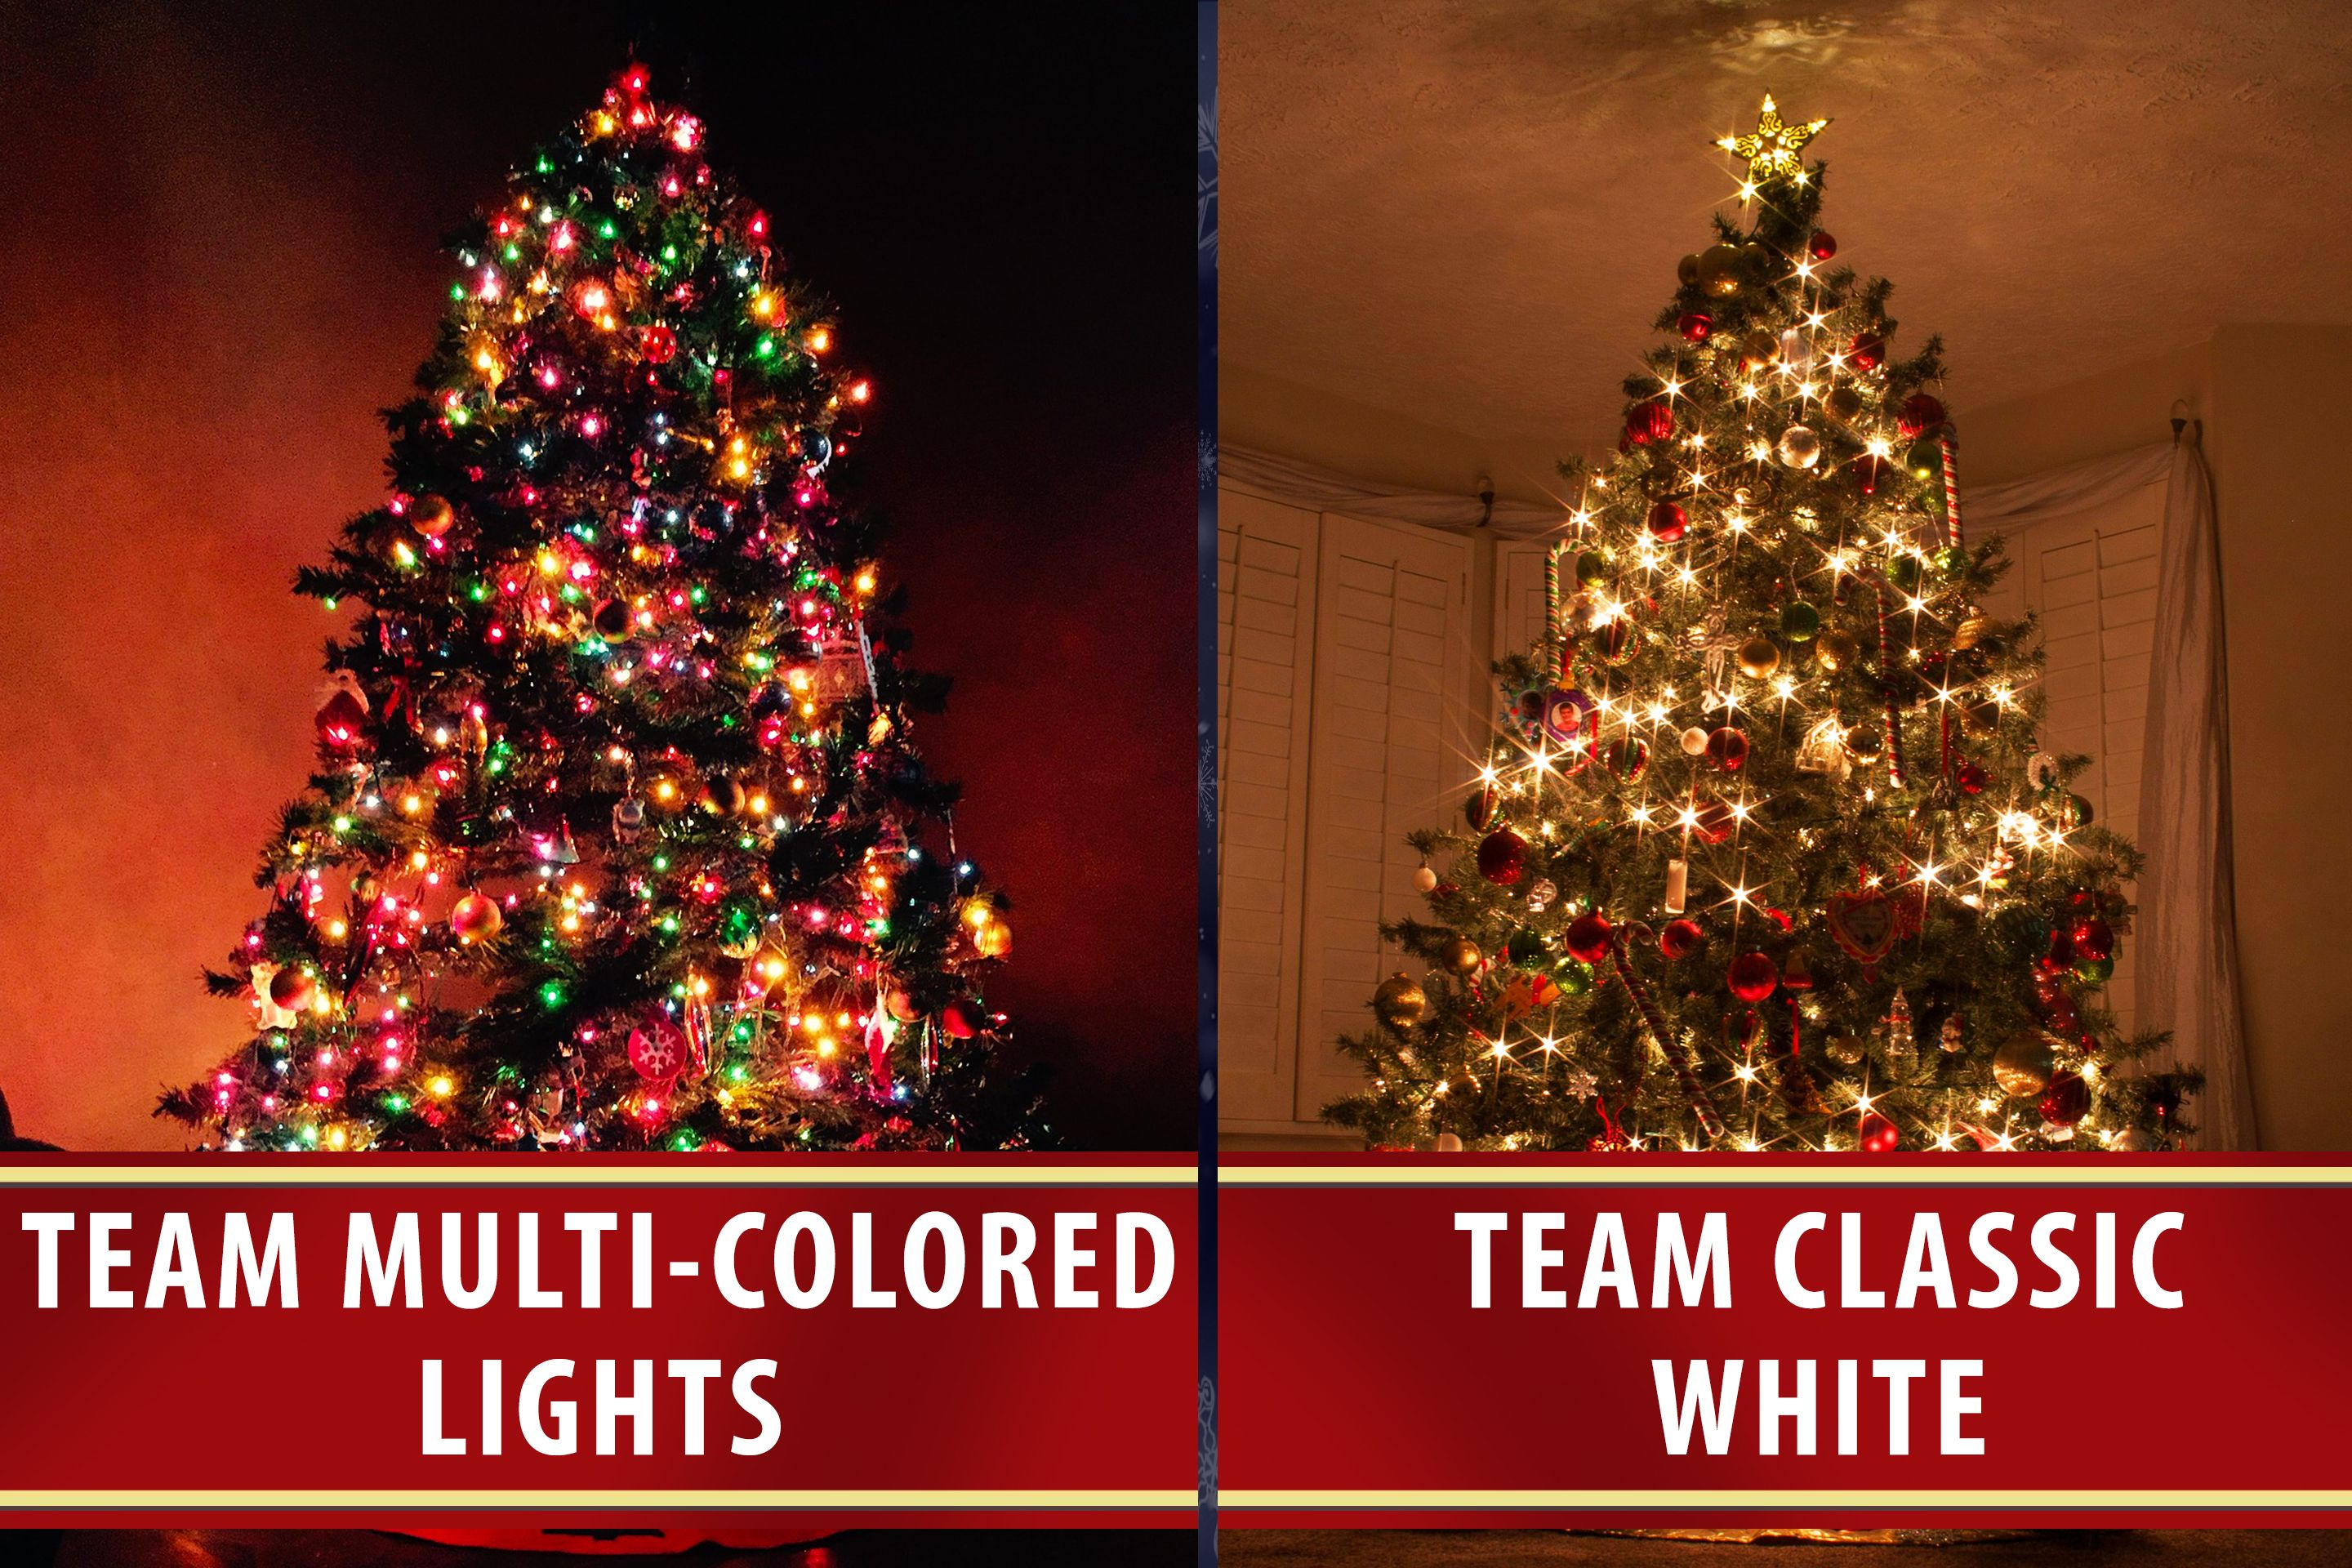 Pick A Side How Do You Light Your Christmas Tree Are You Teamclassicwhite Or Teammulticoloredlights Christmas Lights Christmas Unique Christmas Trees